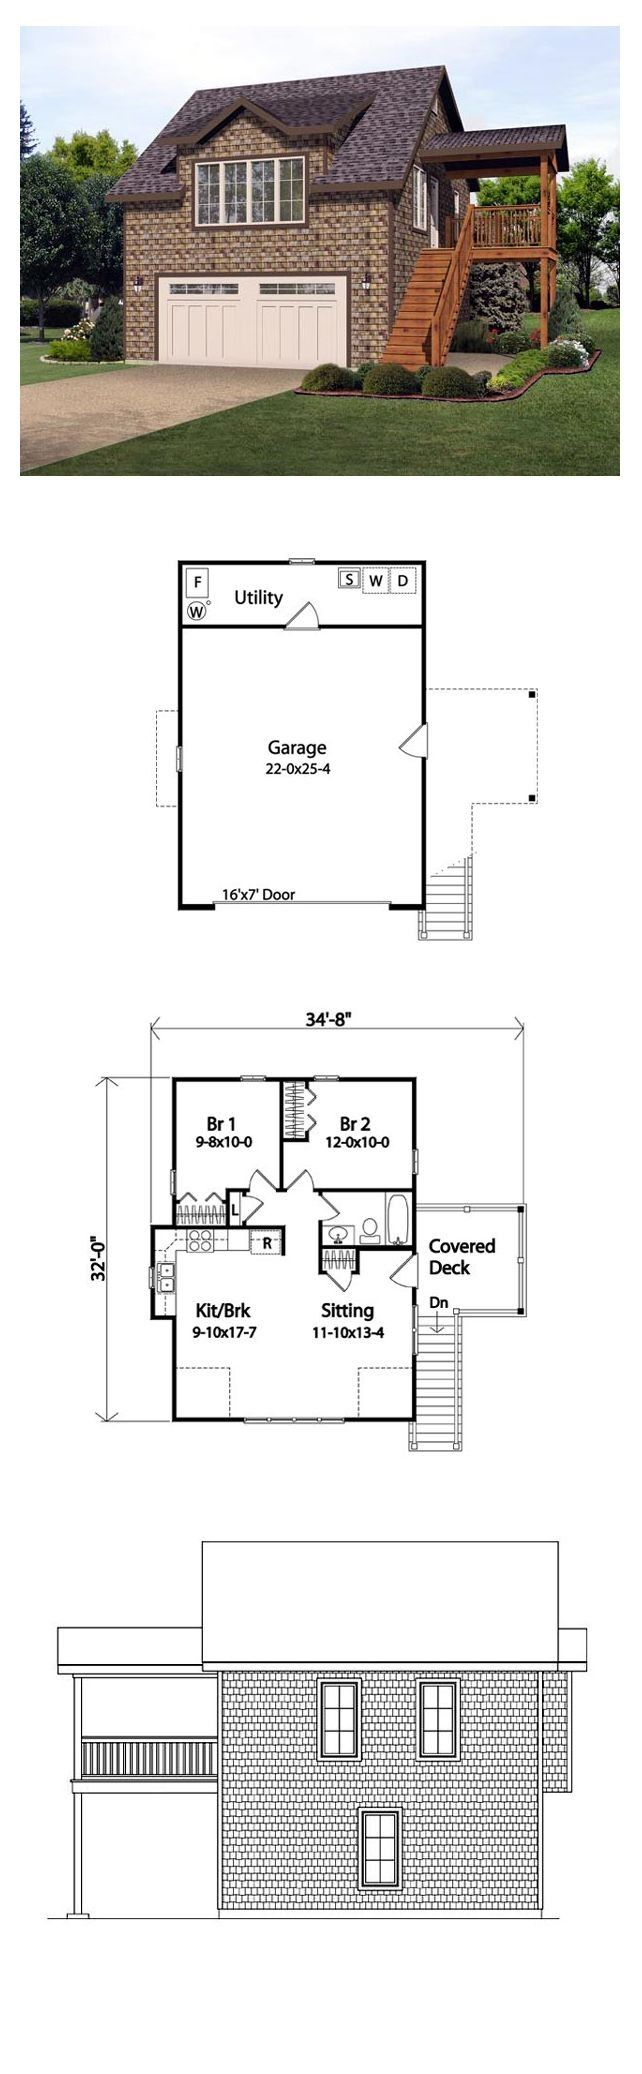 House Plans With Separate Mother In Law Suite Awesome 56 Best Garage Apartment Plans Images On Pinter Garage Guest House Garage Apartment Plans Apartment Plans